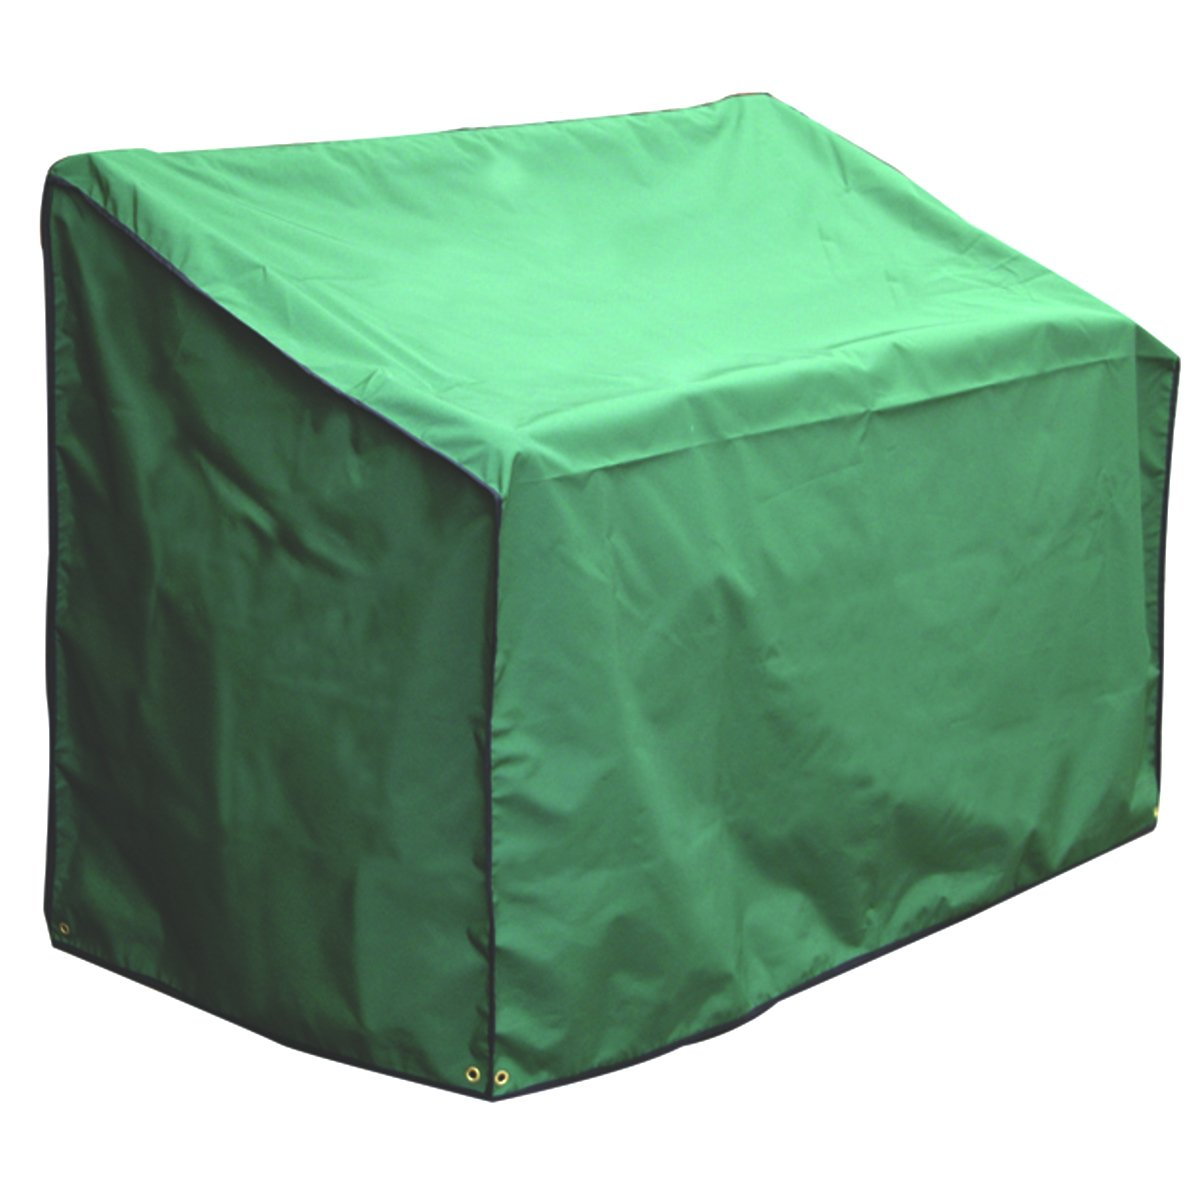 Bosmere Inc. Bosmere Premier Weatherproof Breathable 64-inch 3-Seater Bench Cover